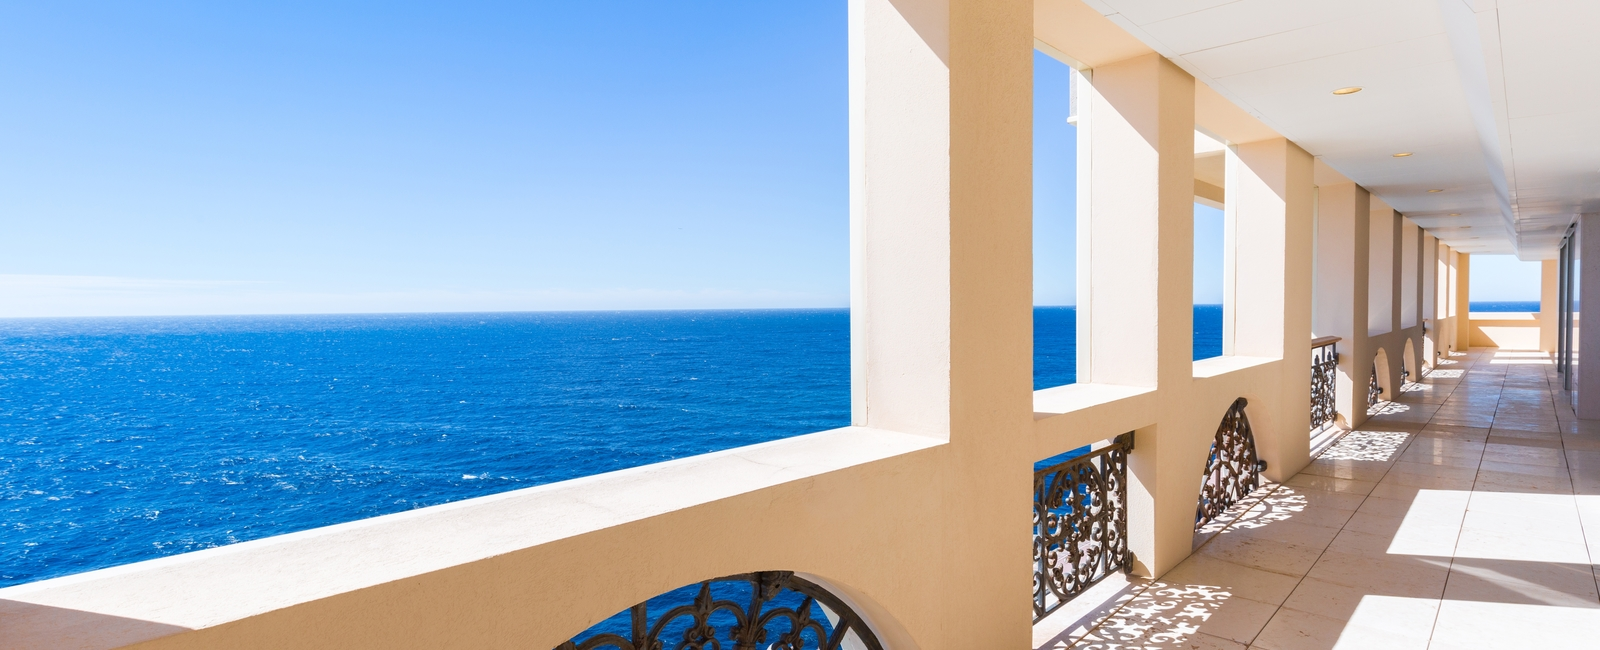 La Costa Properties Monaco : Full Floor Apartment in Luxury building - Monaco